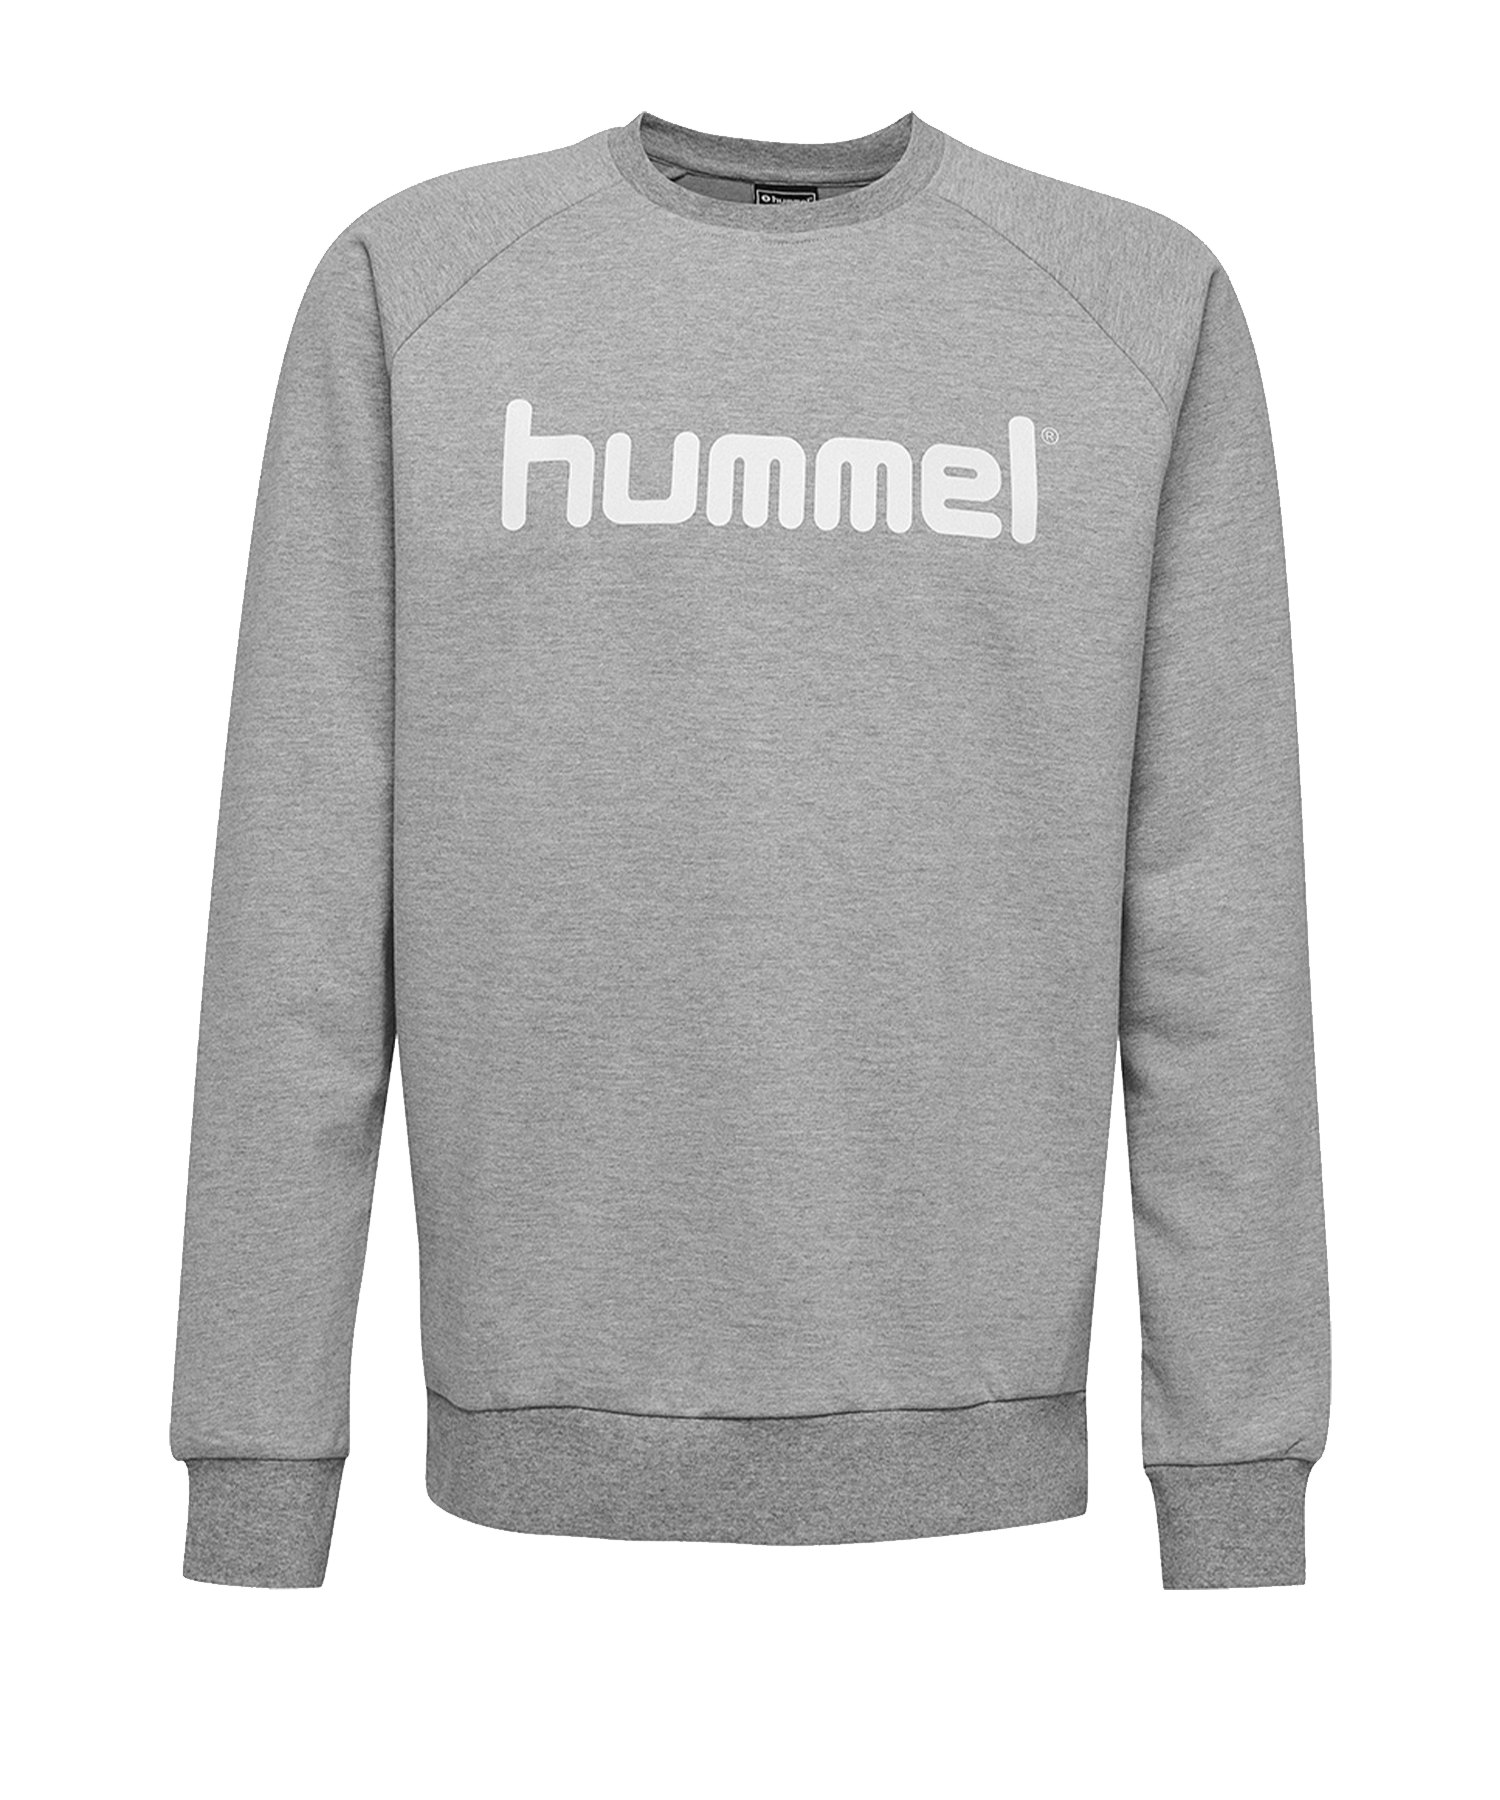 Hummel Cotton Logo Sweatshirt Kids Grau F2006 - Grau